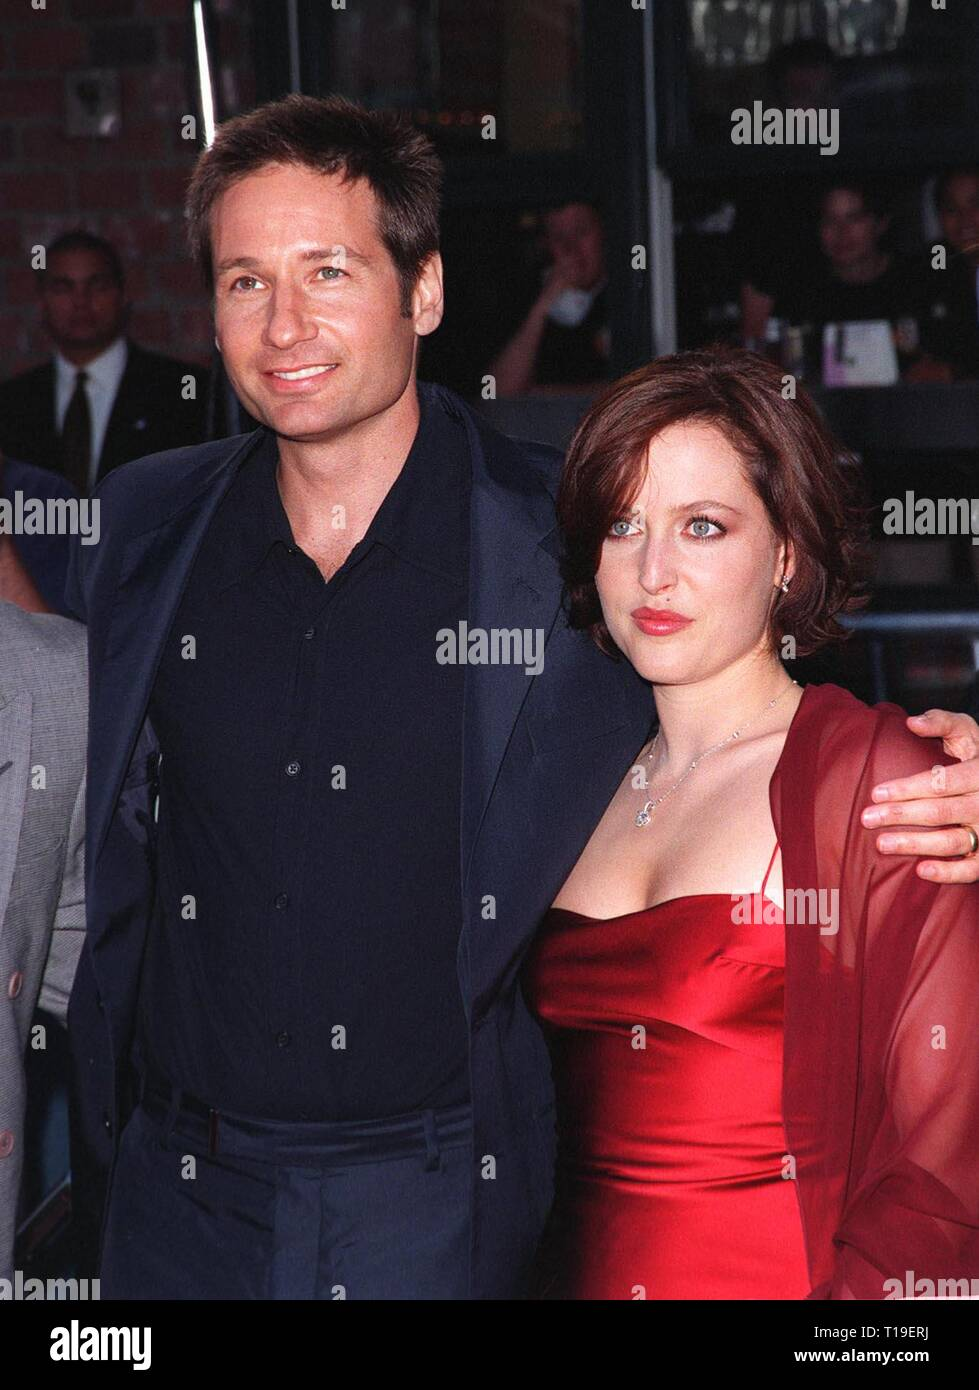 LOS ANGELES, CA - September 8, 2011:  Actor DAVID DUCHOVNY & actress GILLIAN ANDERSON at the world premiere, in Los Angeles, of their movie 'The X-Files.' - Stock Image